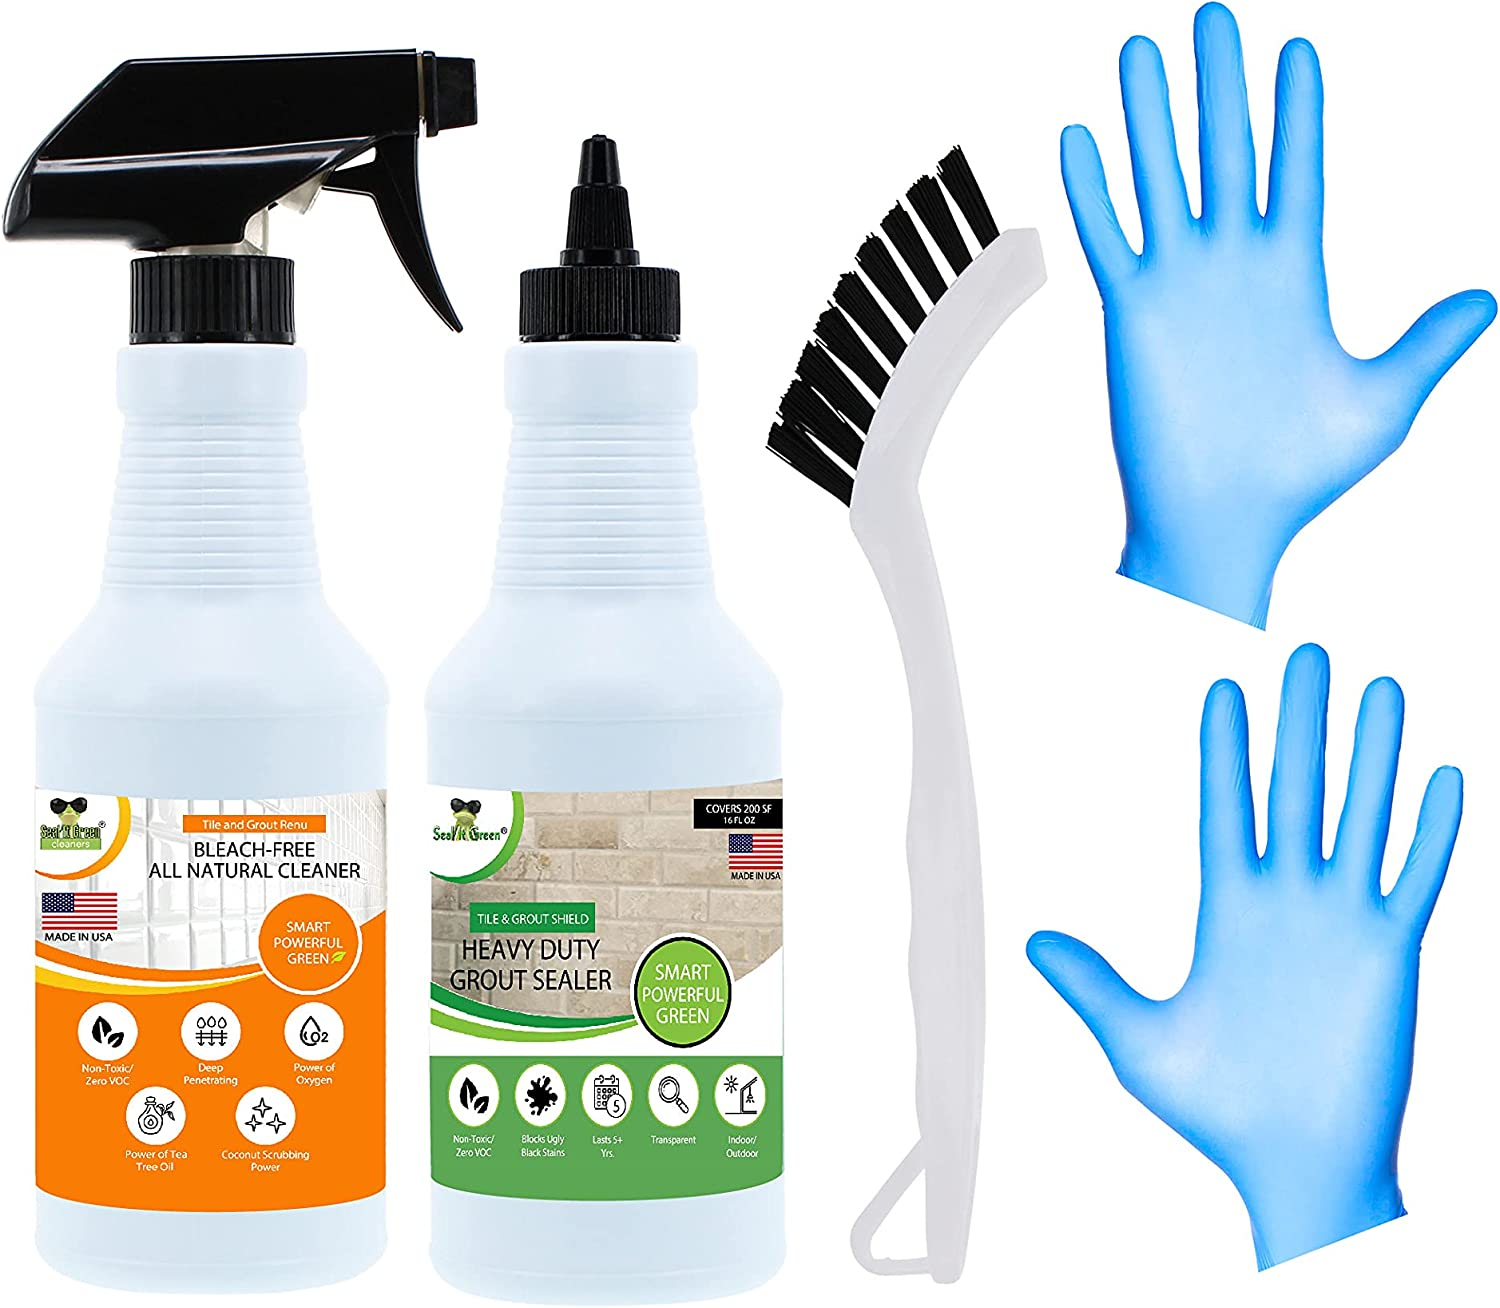 Cheap mail order shopping Ranking TOP1 Tile and Grout Gel Cleaner Stain Sealer Guard Bleach-Free N -